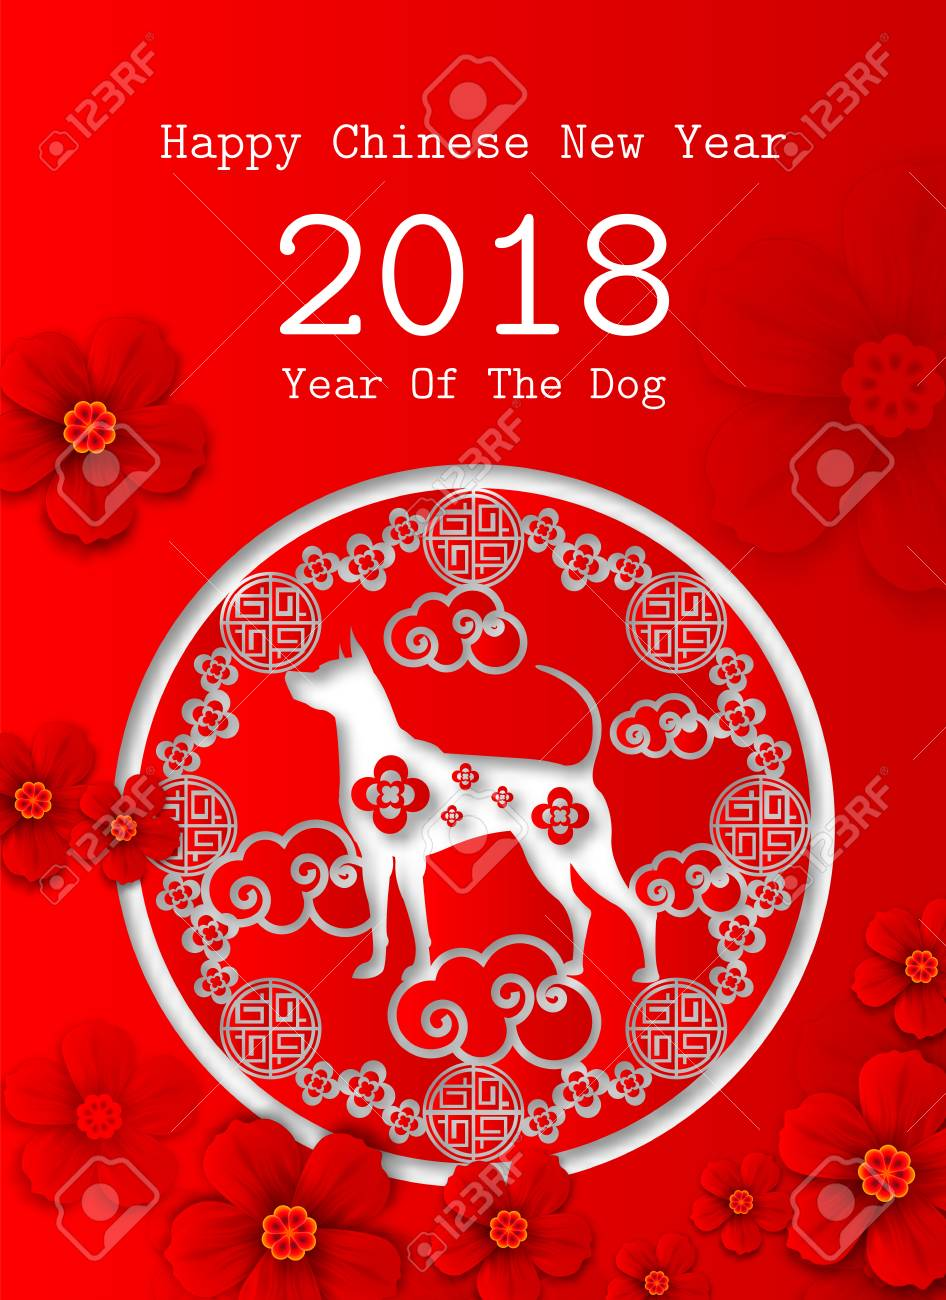 2018 chinese new year paper cutting year of dog vector design for your greetings card - 2018 Chinese New Year